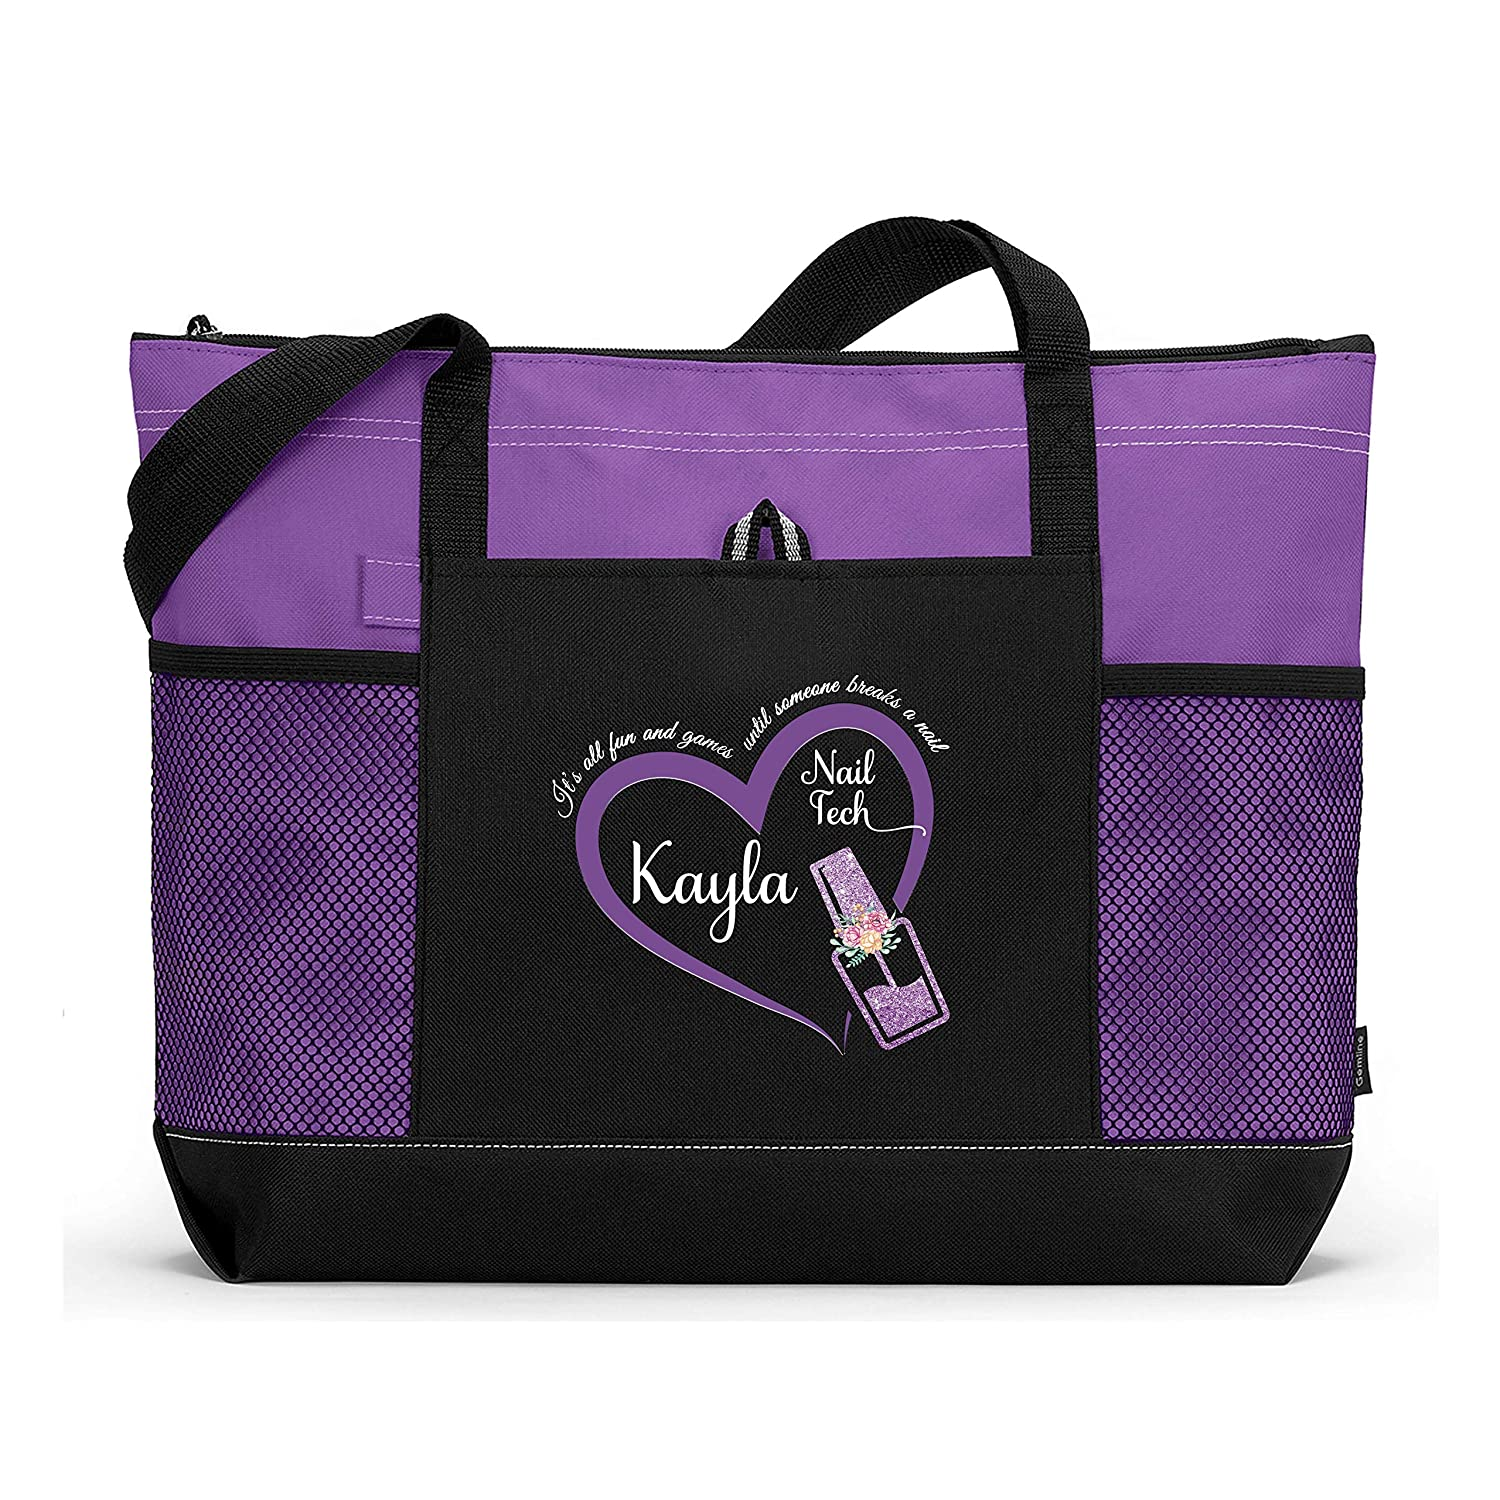 Very popular! Nail Tech It's All Fun Games wit Tote Bag Personalized Printed Popular standard